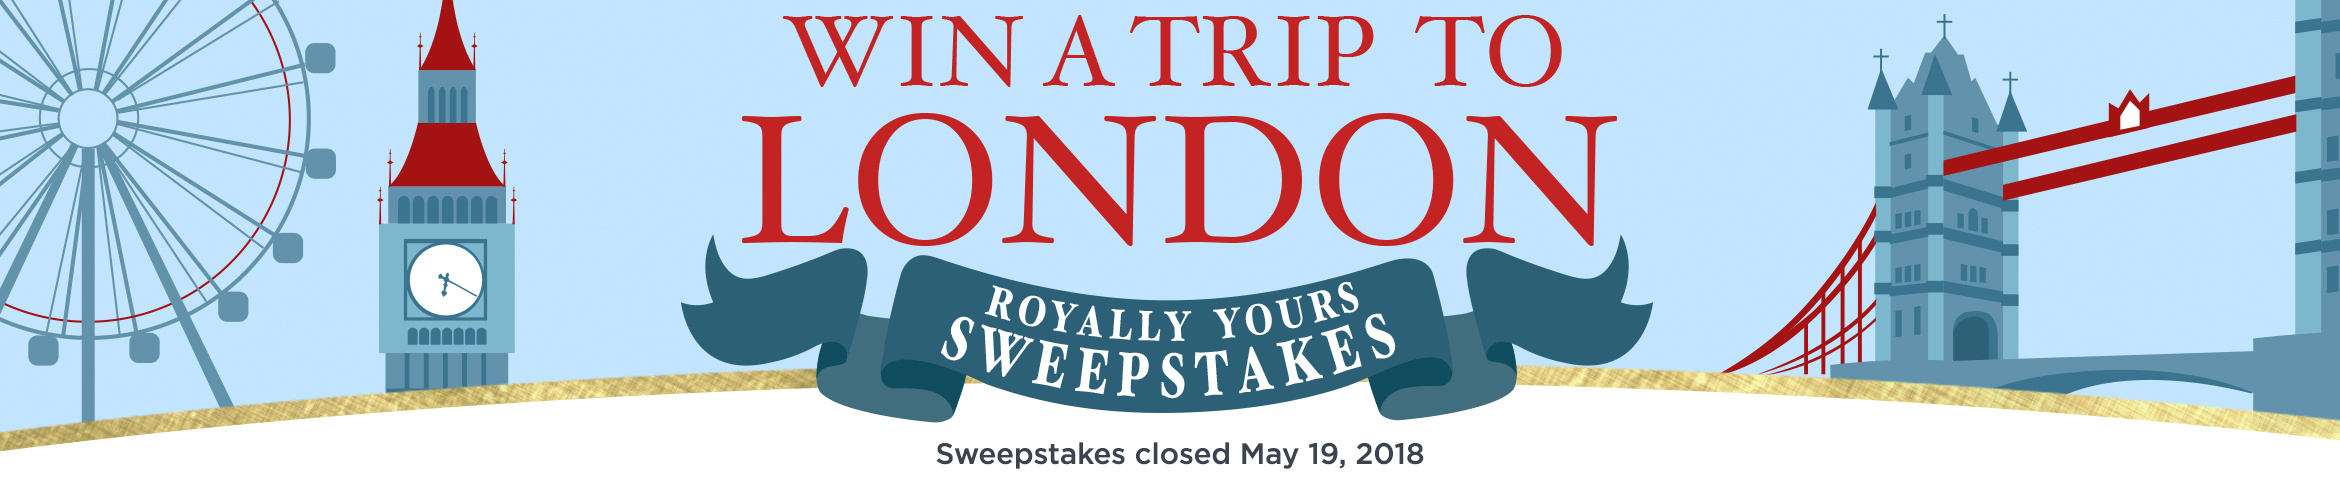 Win a Trip to London — Royally Yours Sweepstakes — Sweepstakes closed May 19, 2018